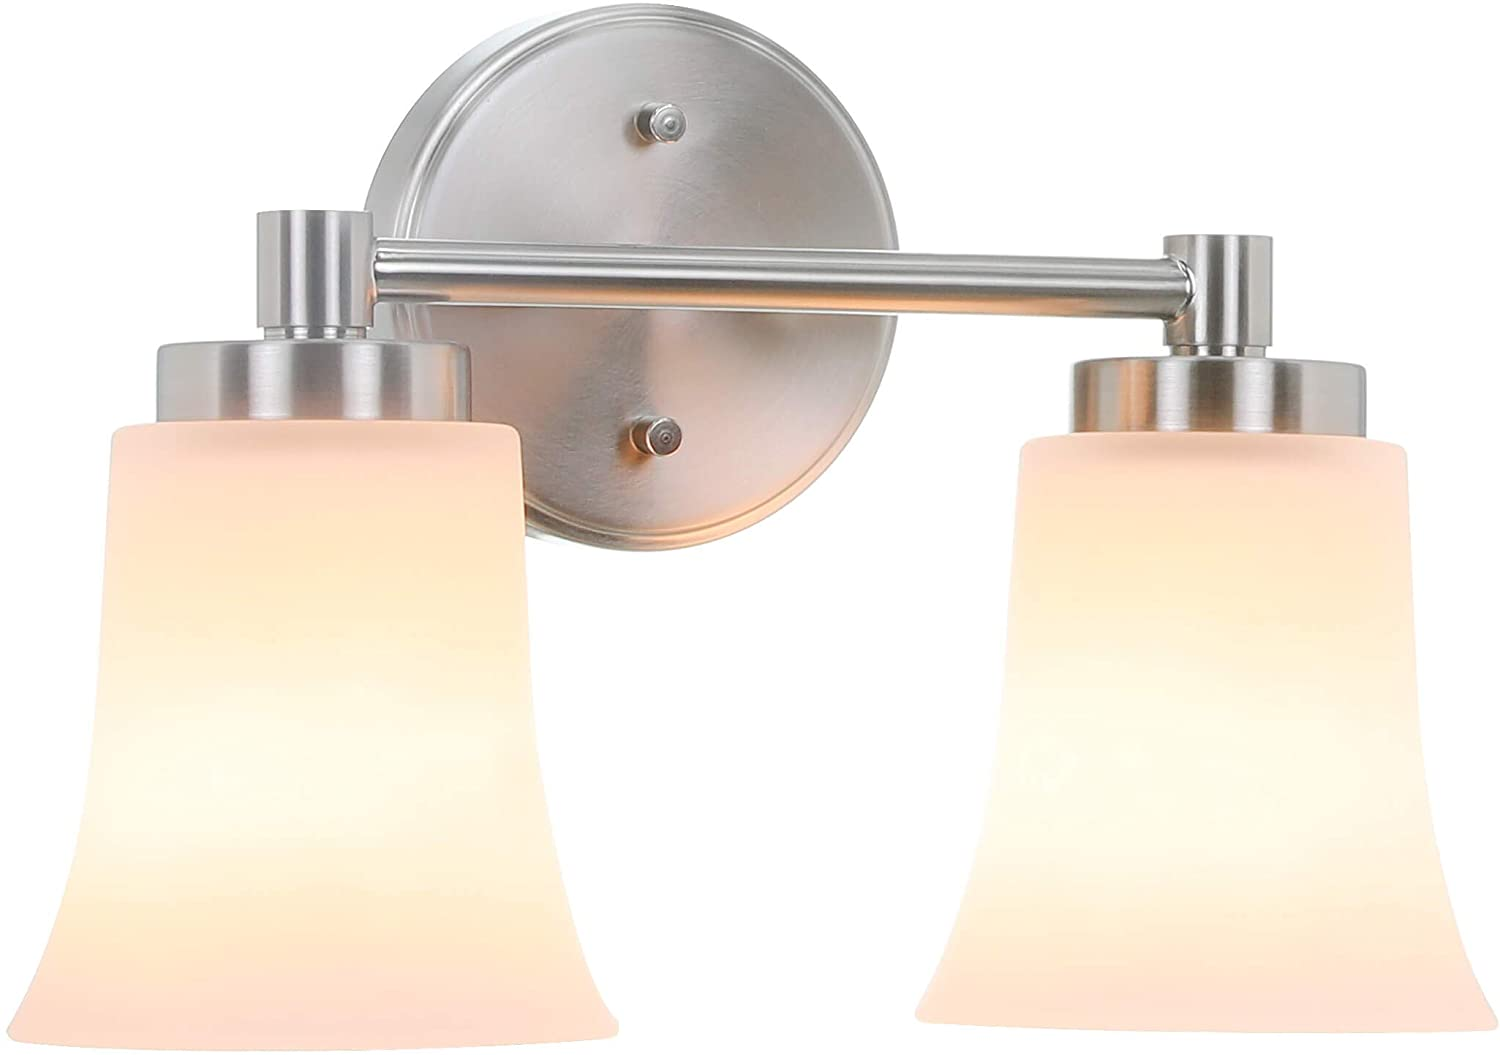 XiNBEi Lighting Bathroom Vanity Light, Modern Wall Light with Glass, Brushed Nickel 2 Light Bath Bar Light XB-W1235-2-BN